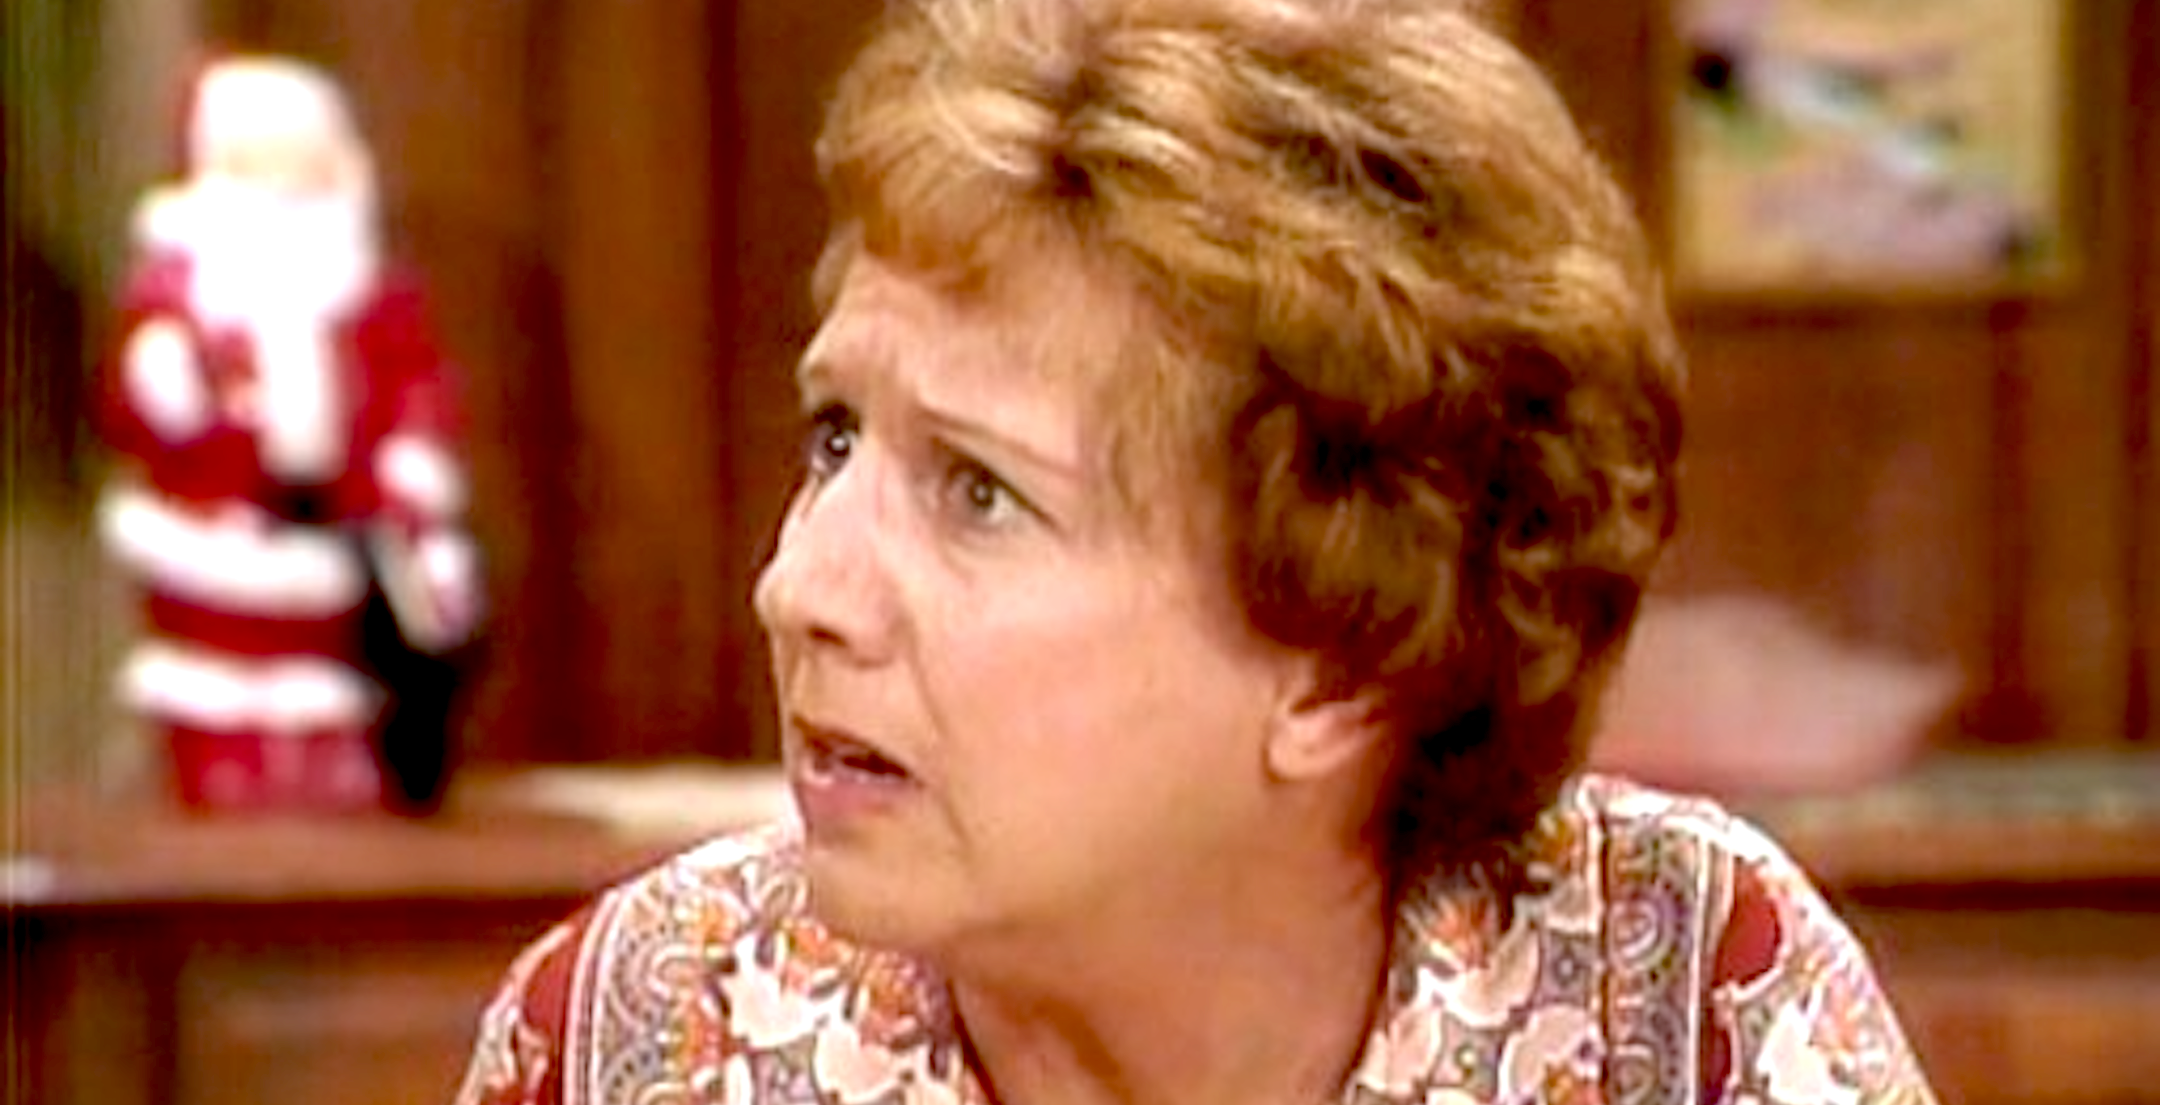 tv, All in the Family, 70s, sitcom, jean stapleton as edith bunker